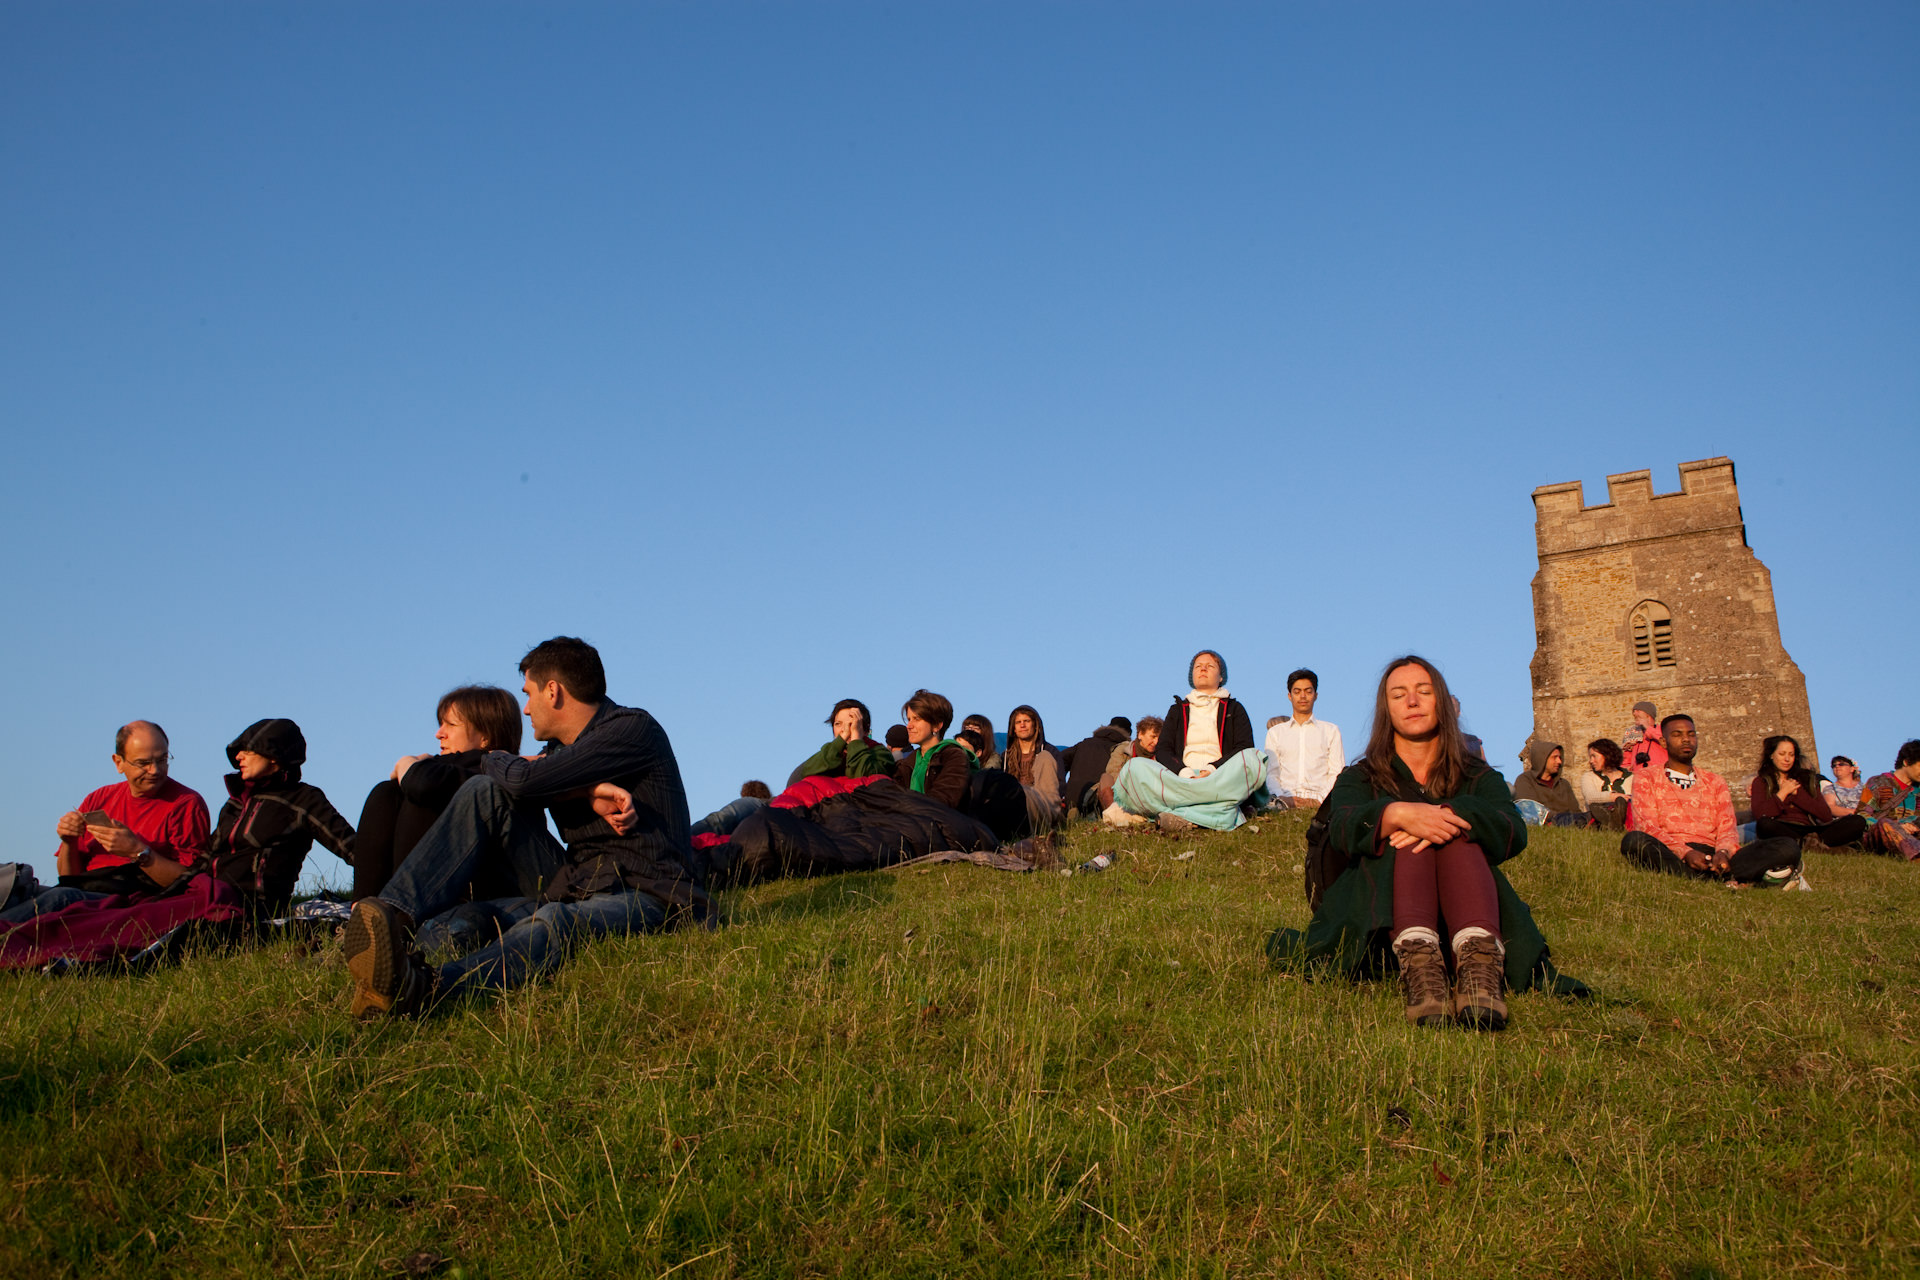 Glastonbury Tor Summer Solstice